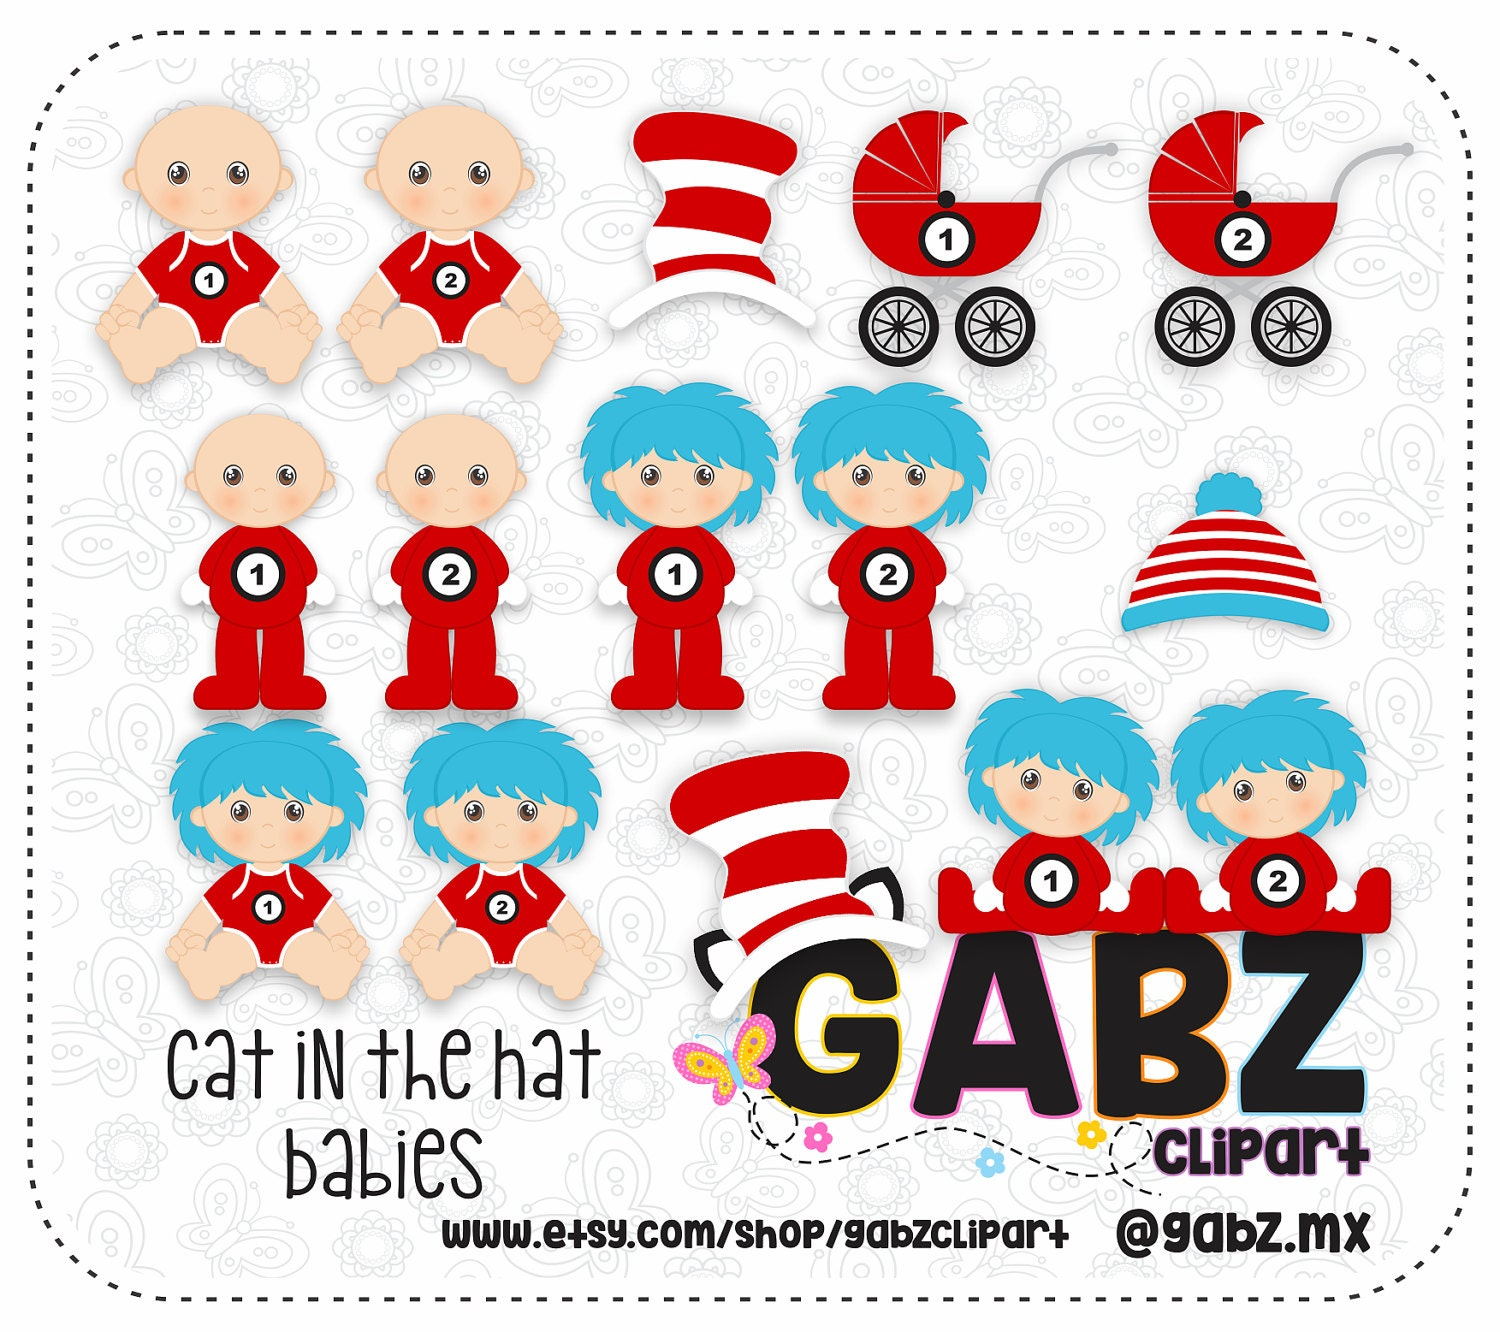 Cat in the Hat Babies Baby Shower Clipart Thing 1 Thing 2 Baby